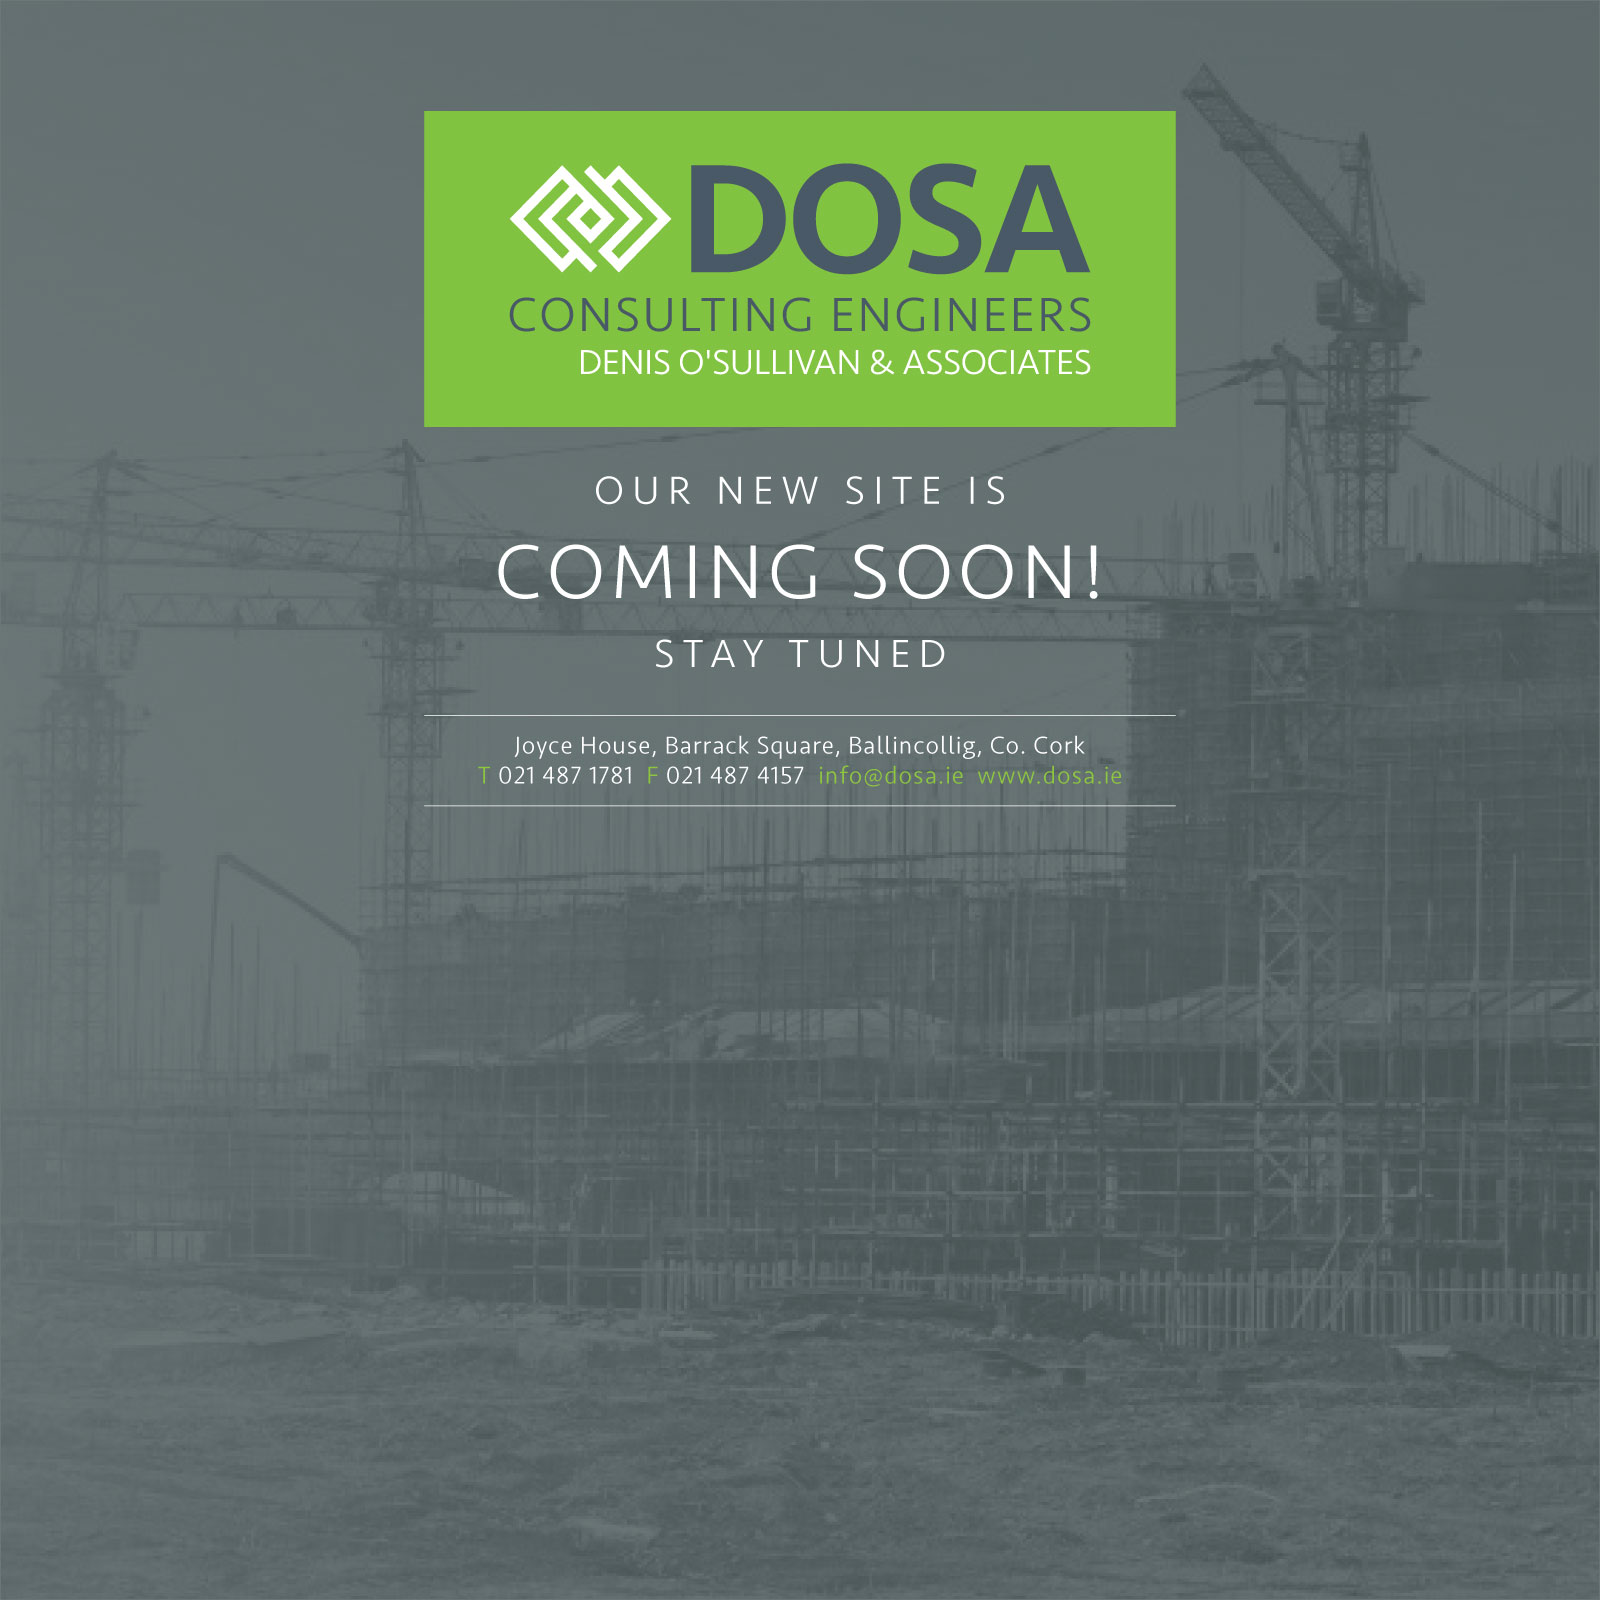 DOSA Consulting Engineers